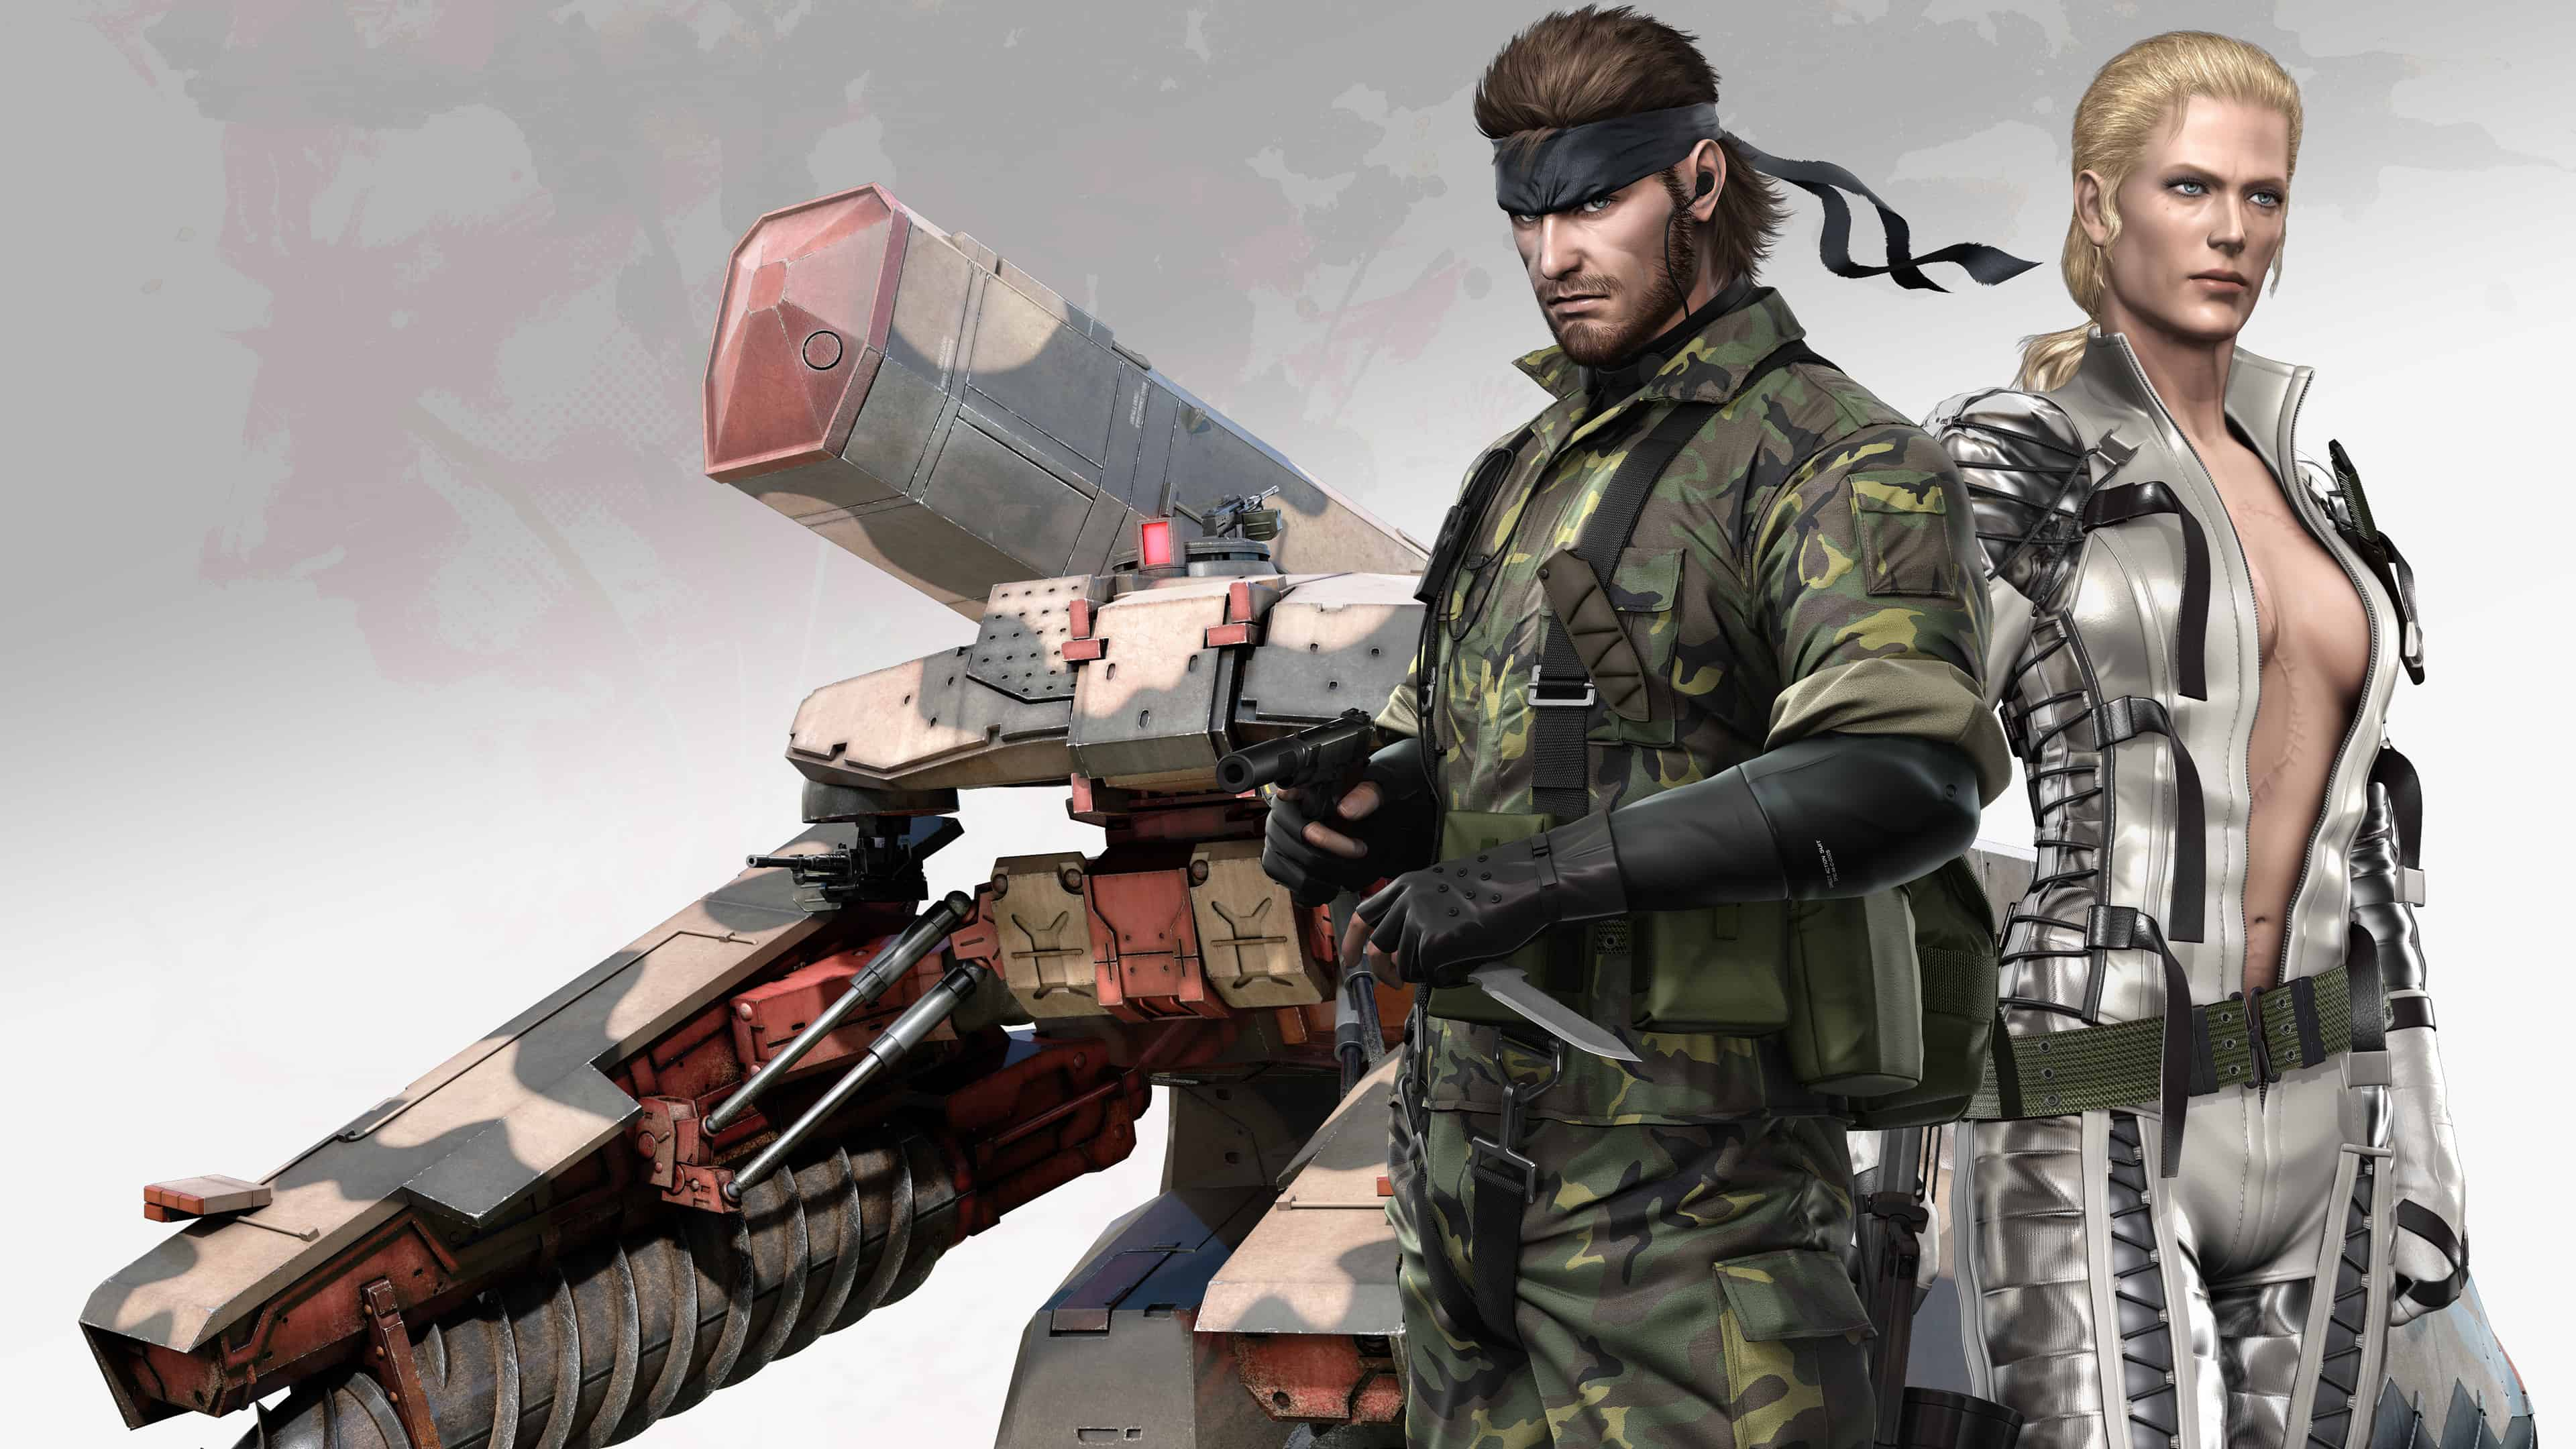 Keywords Metal Gear Solid DOWNLOAD IMAGE